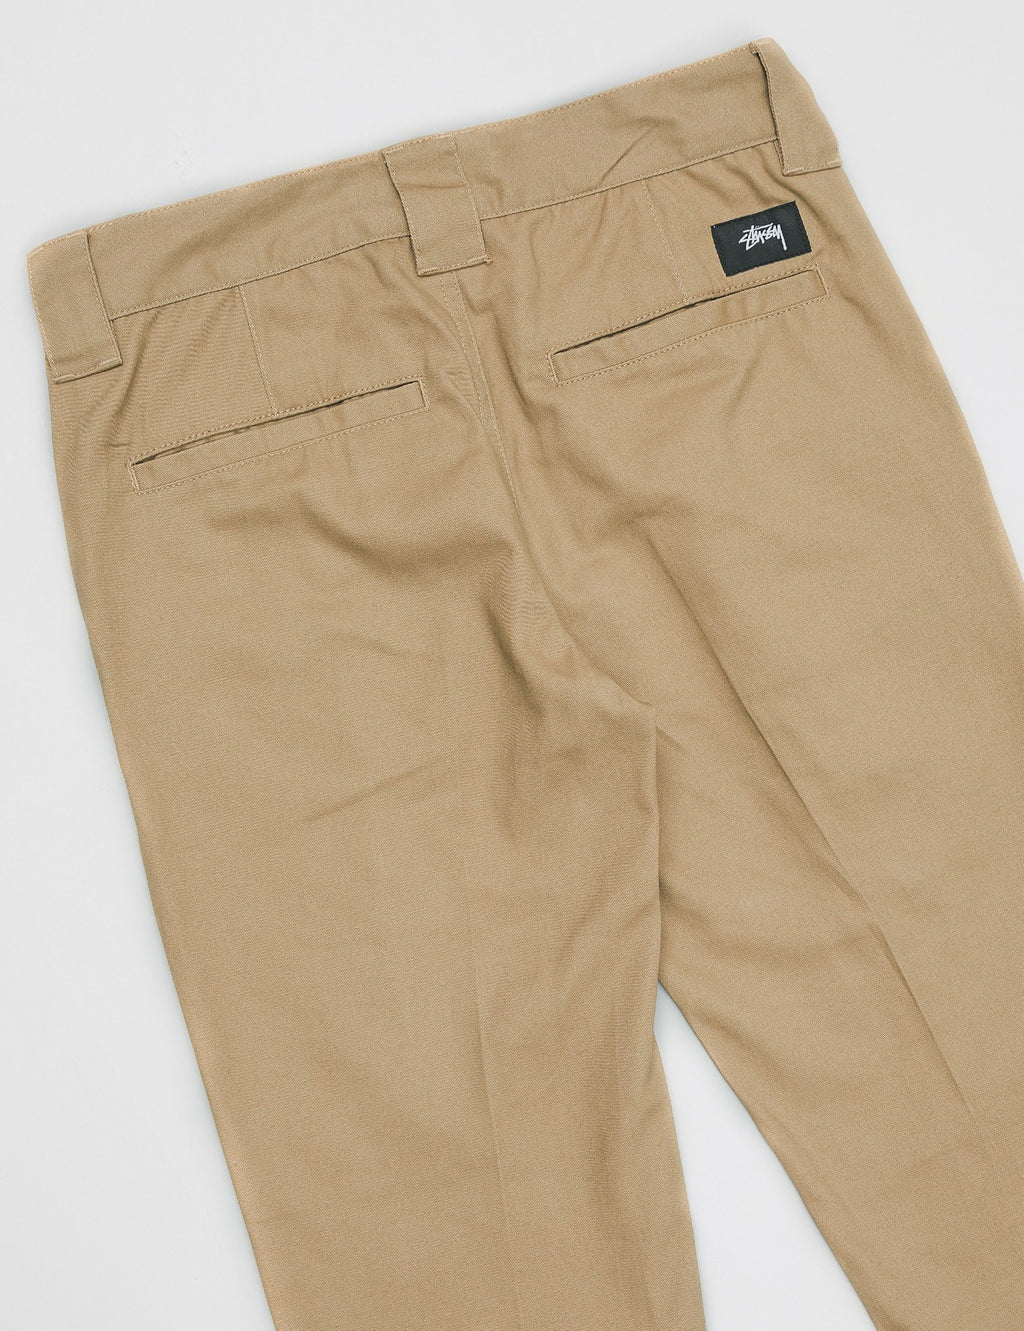 Stussy - Warner Women's Work Pants, Khaki